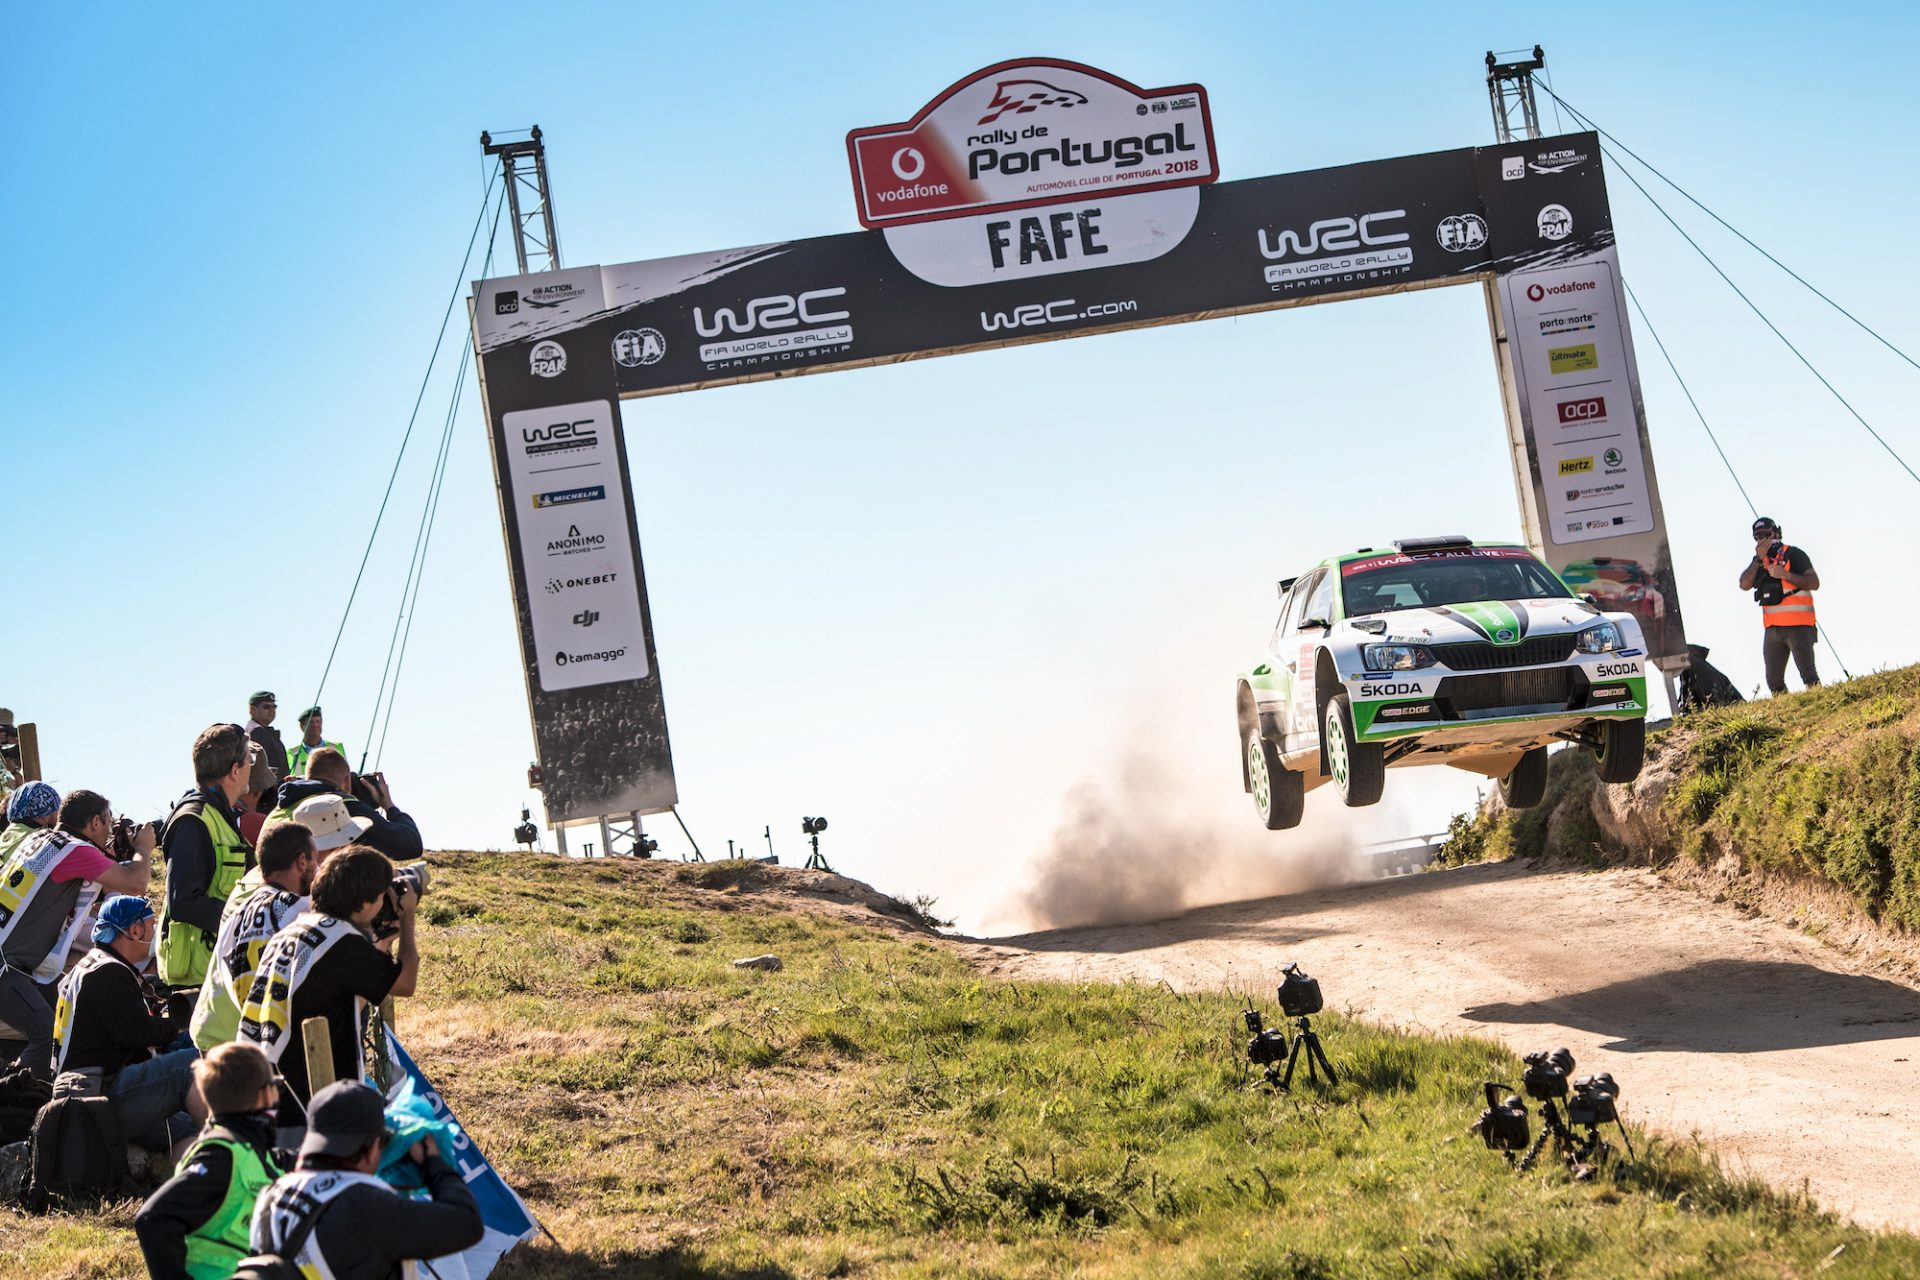 Rally de Portugal: Latest Results